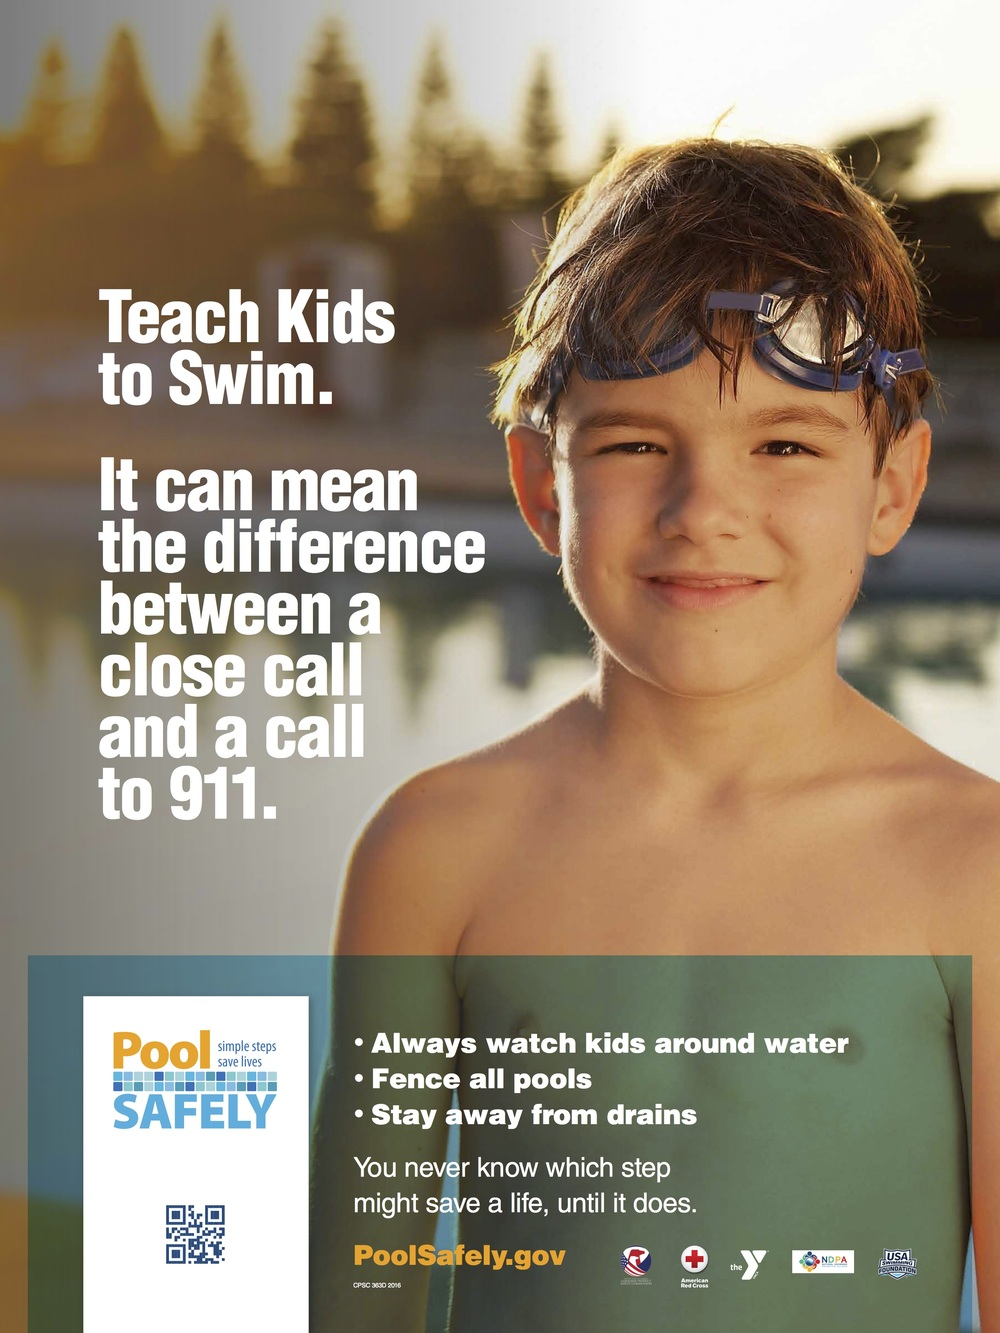 BUY A POOL WHILE WE HELP KEEP KIDS SAFE